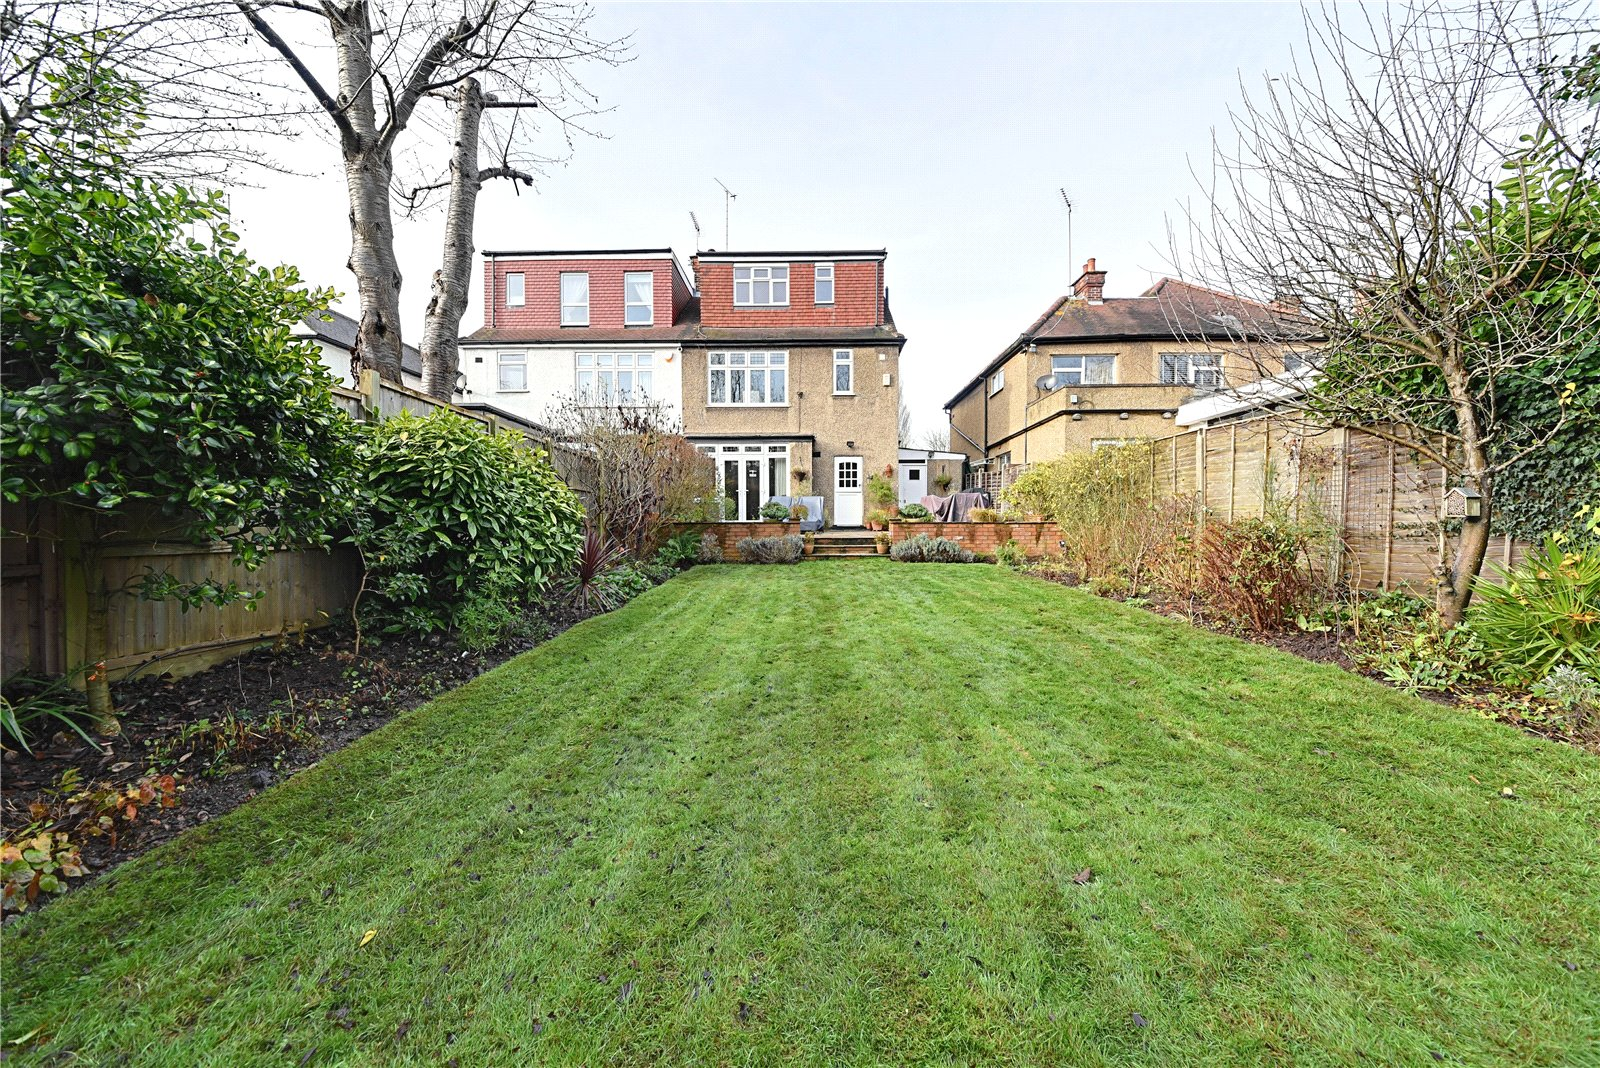 4 bed house for sale in Hendon, NW4 1LJ  - Property Image 4